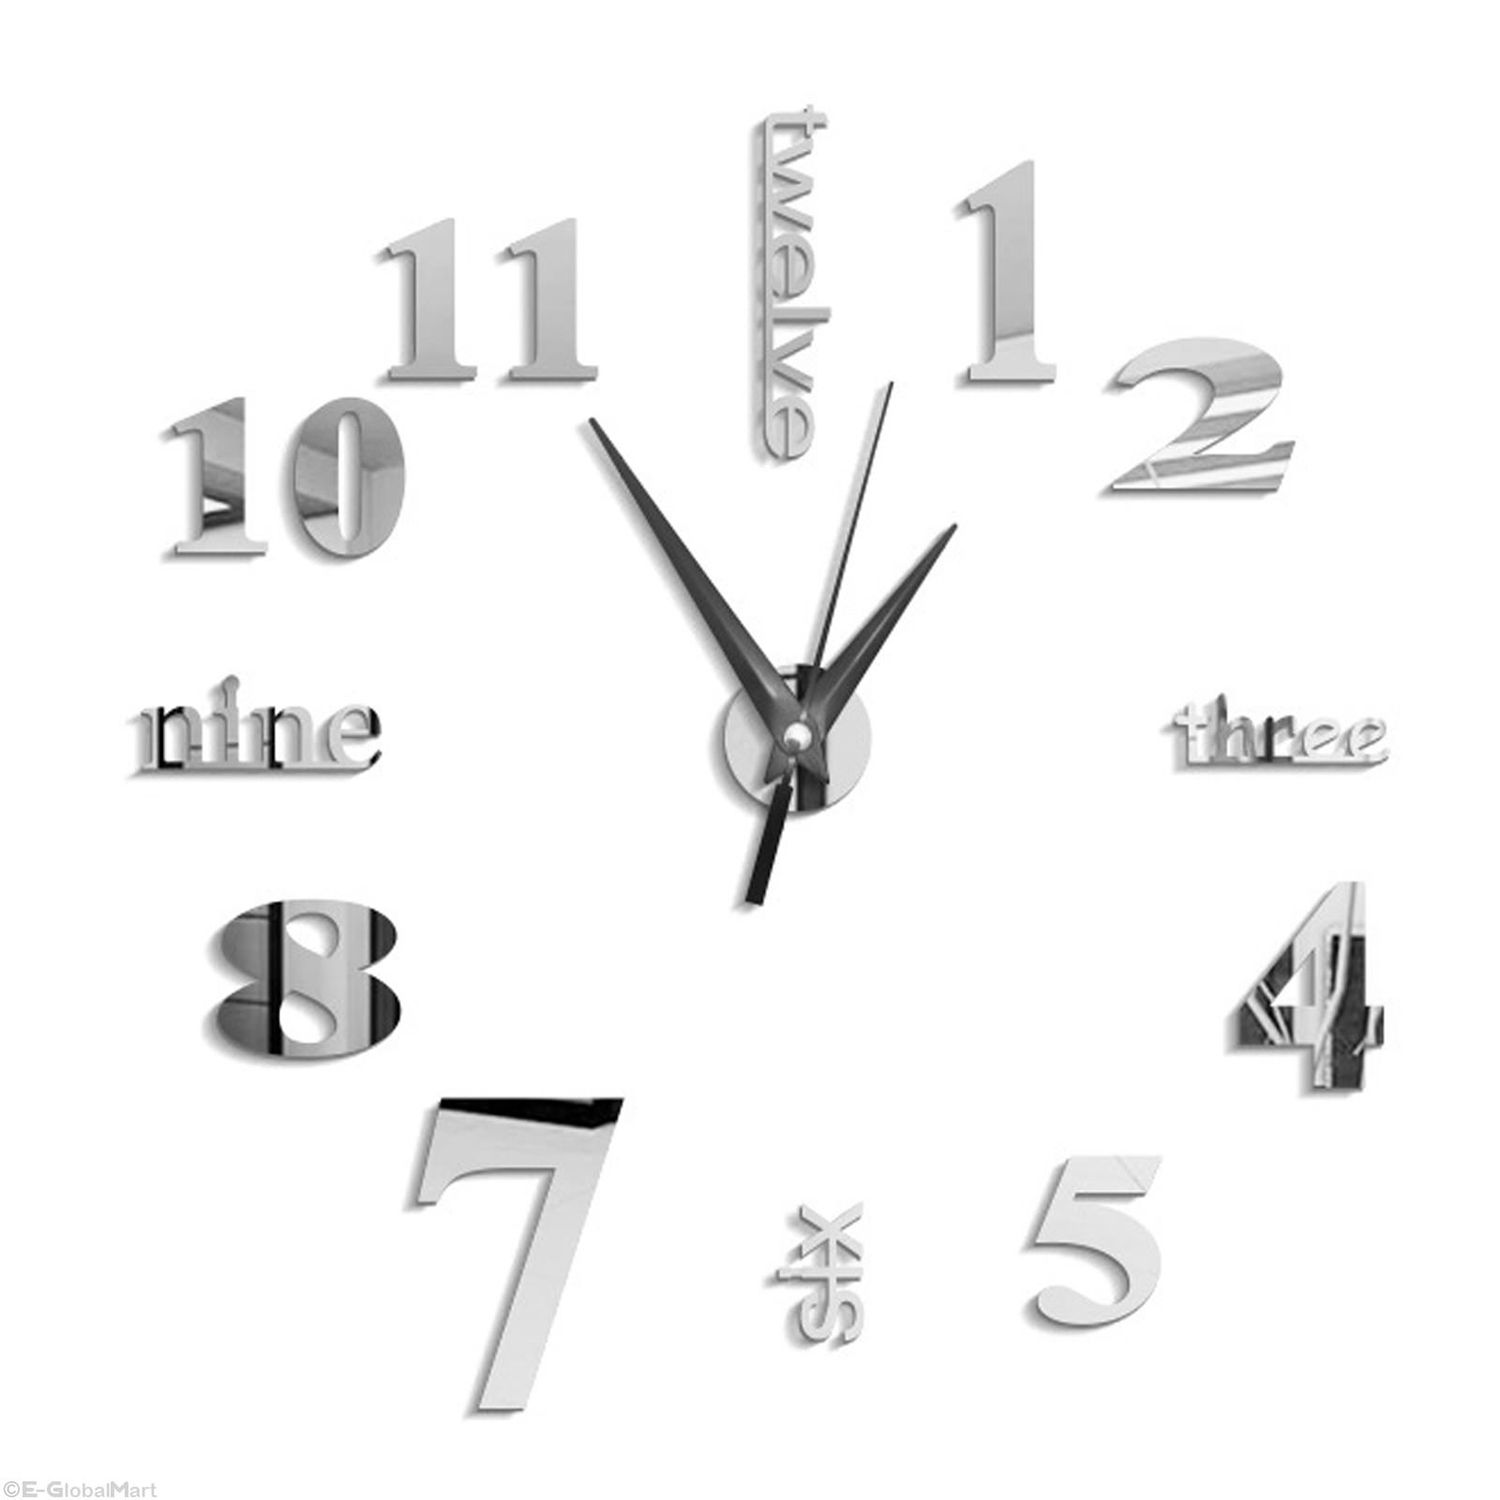 HOT SALE 3D Large Wall Clock Mirror Sticker Big Watch Sticker Home Decor Unique Gift DIY